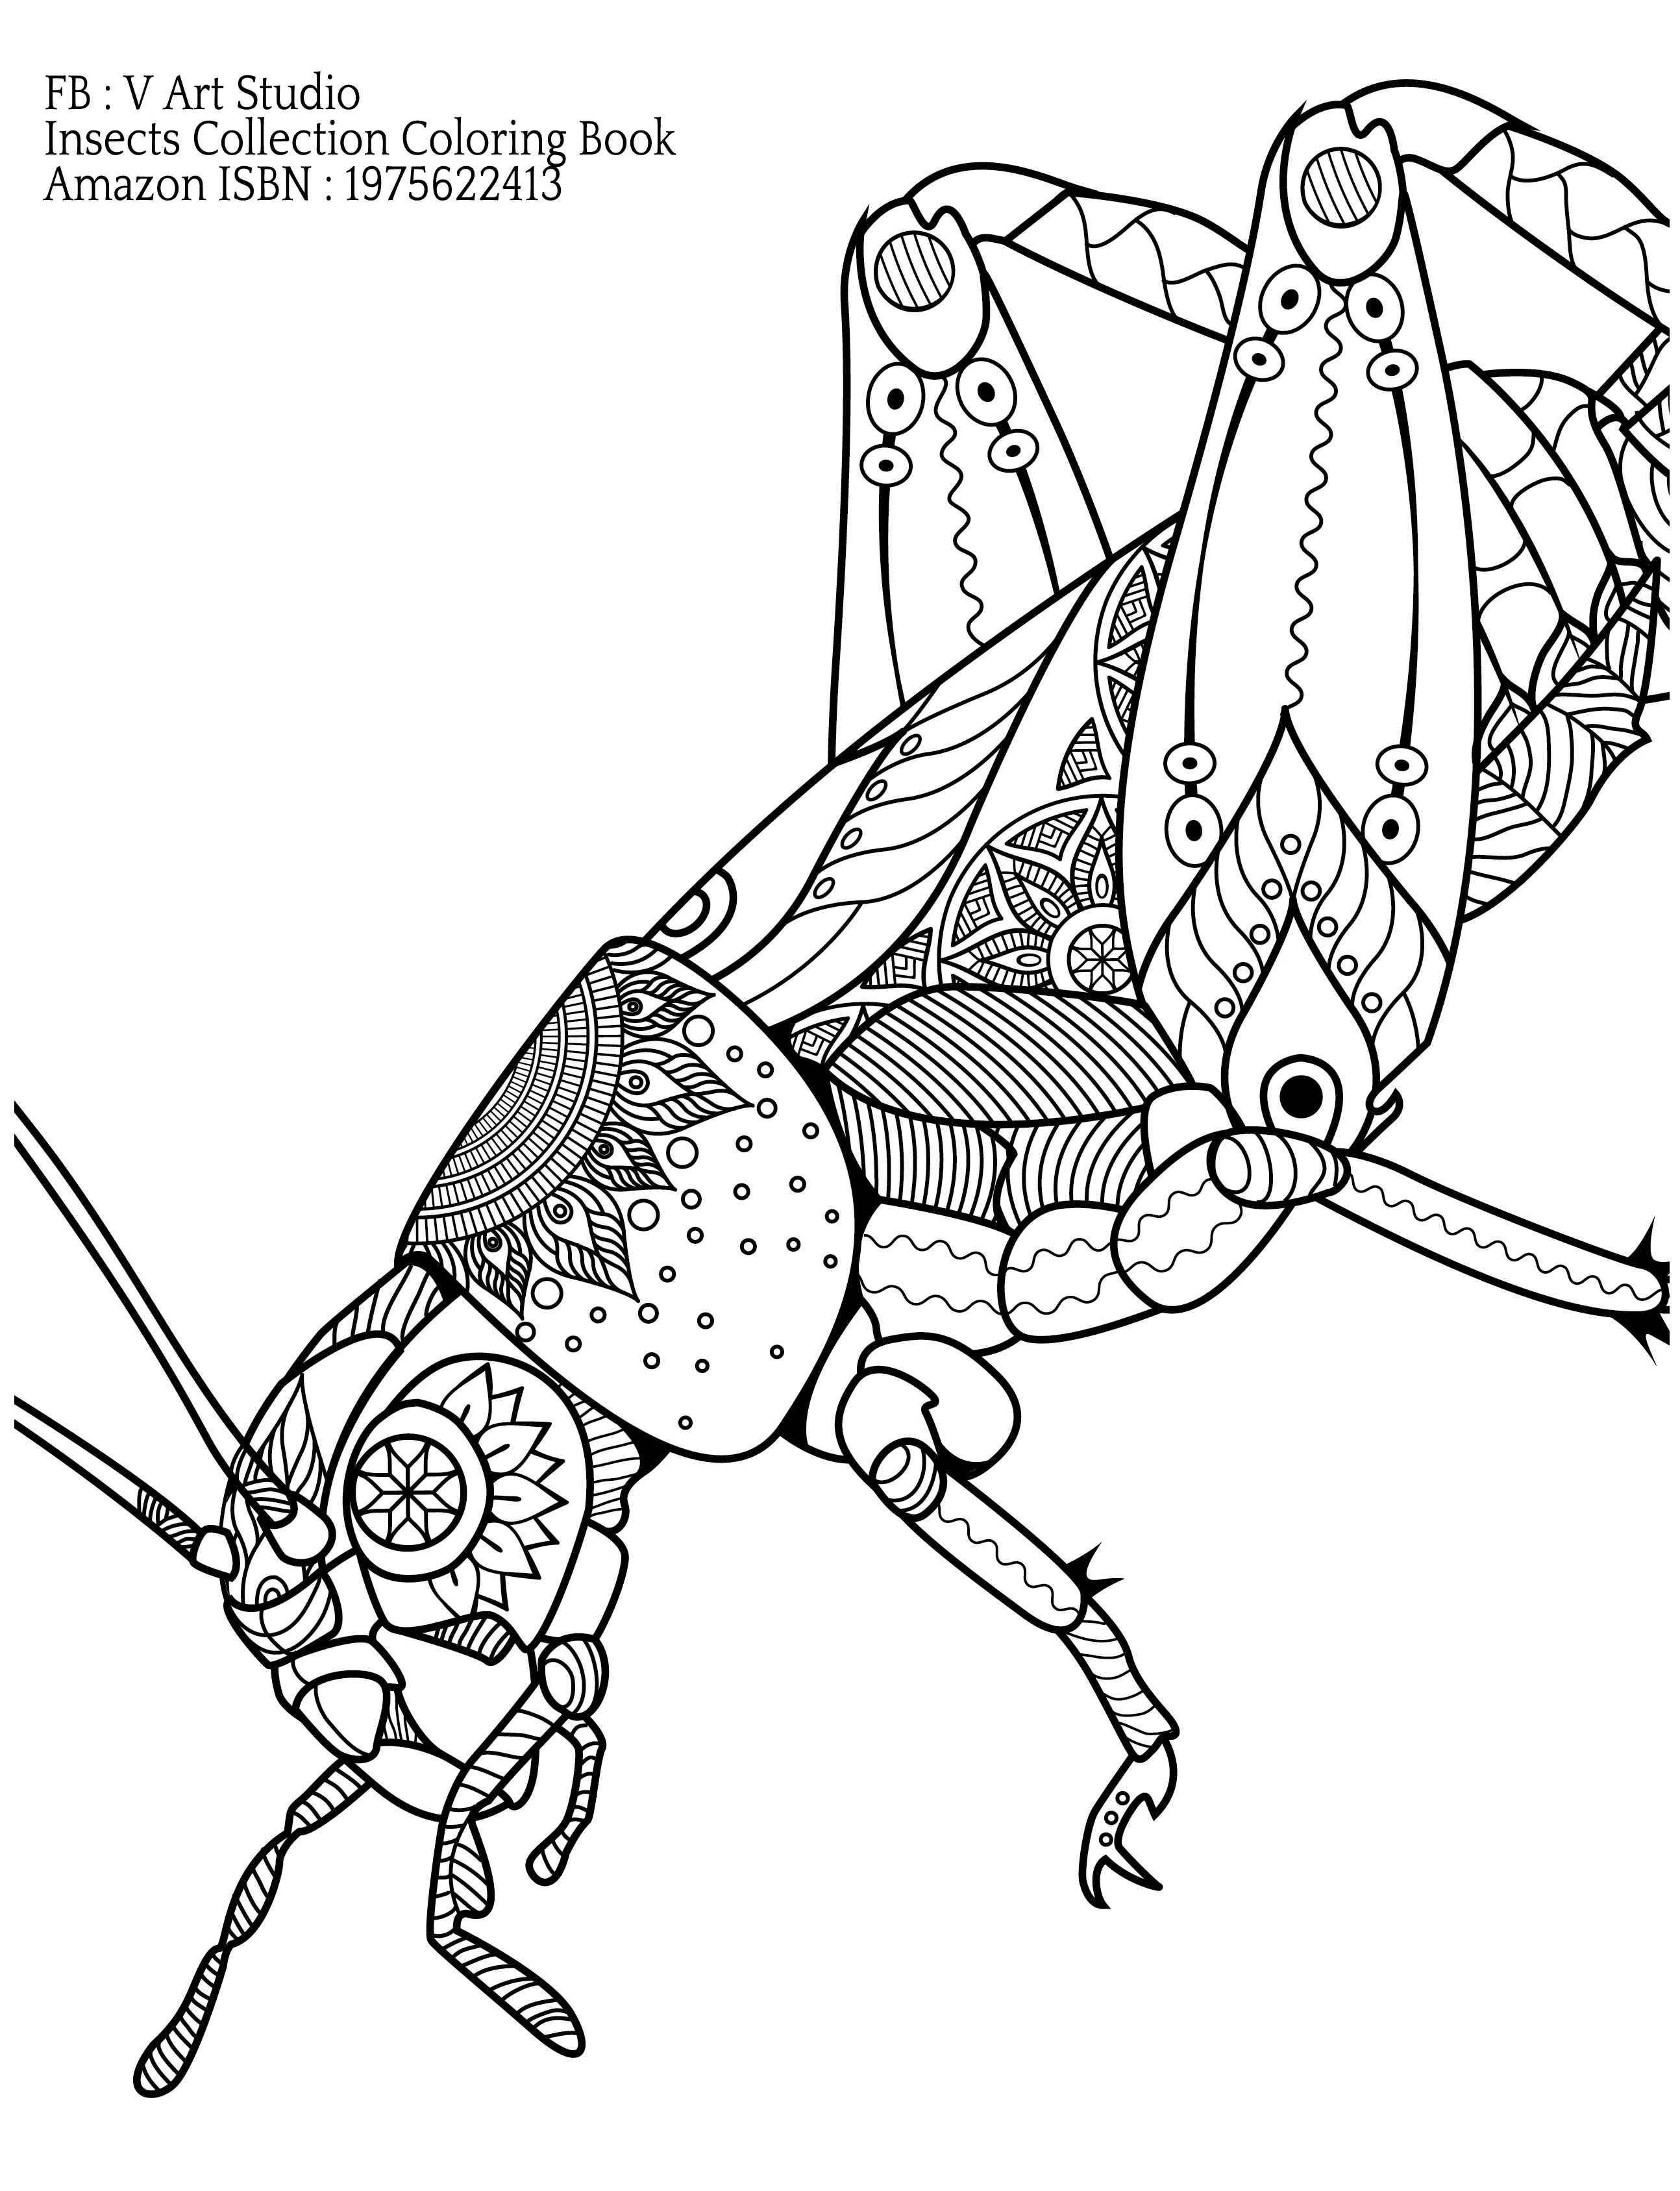 Insects Collection Coloring Books For Adults See It On Our Website K Imagine Pub Com Ausmalbilder Ausmalen Bilder